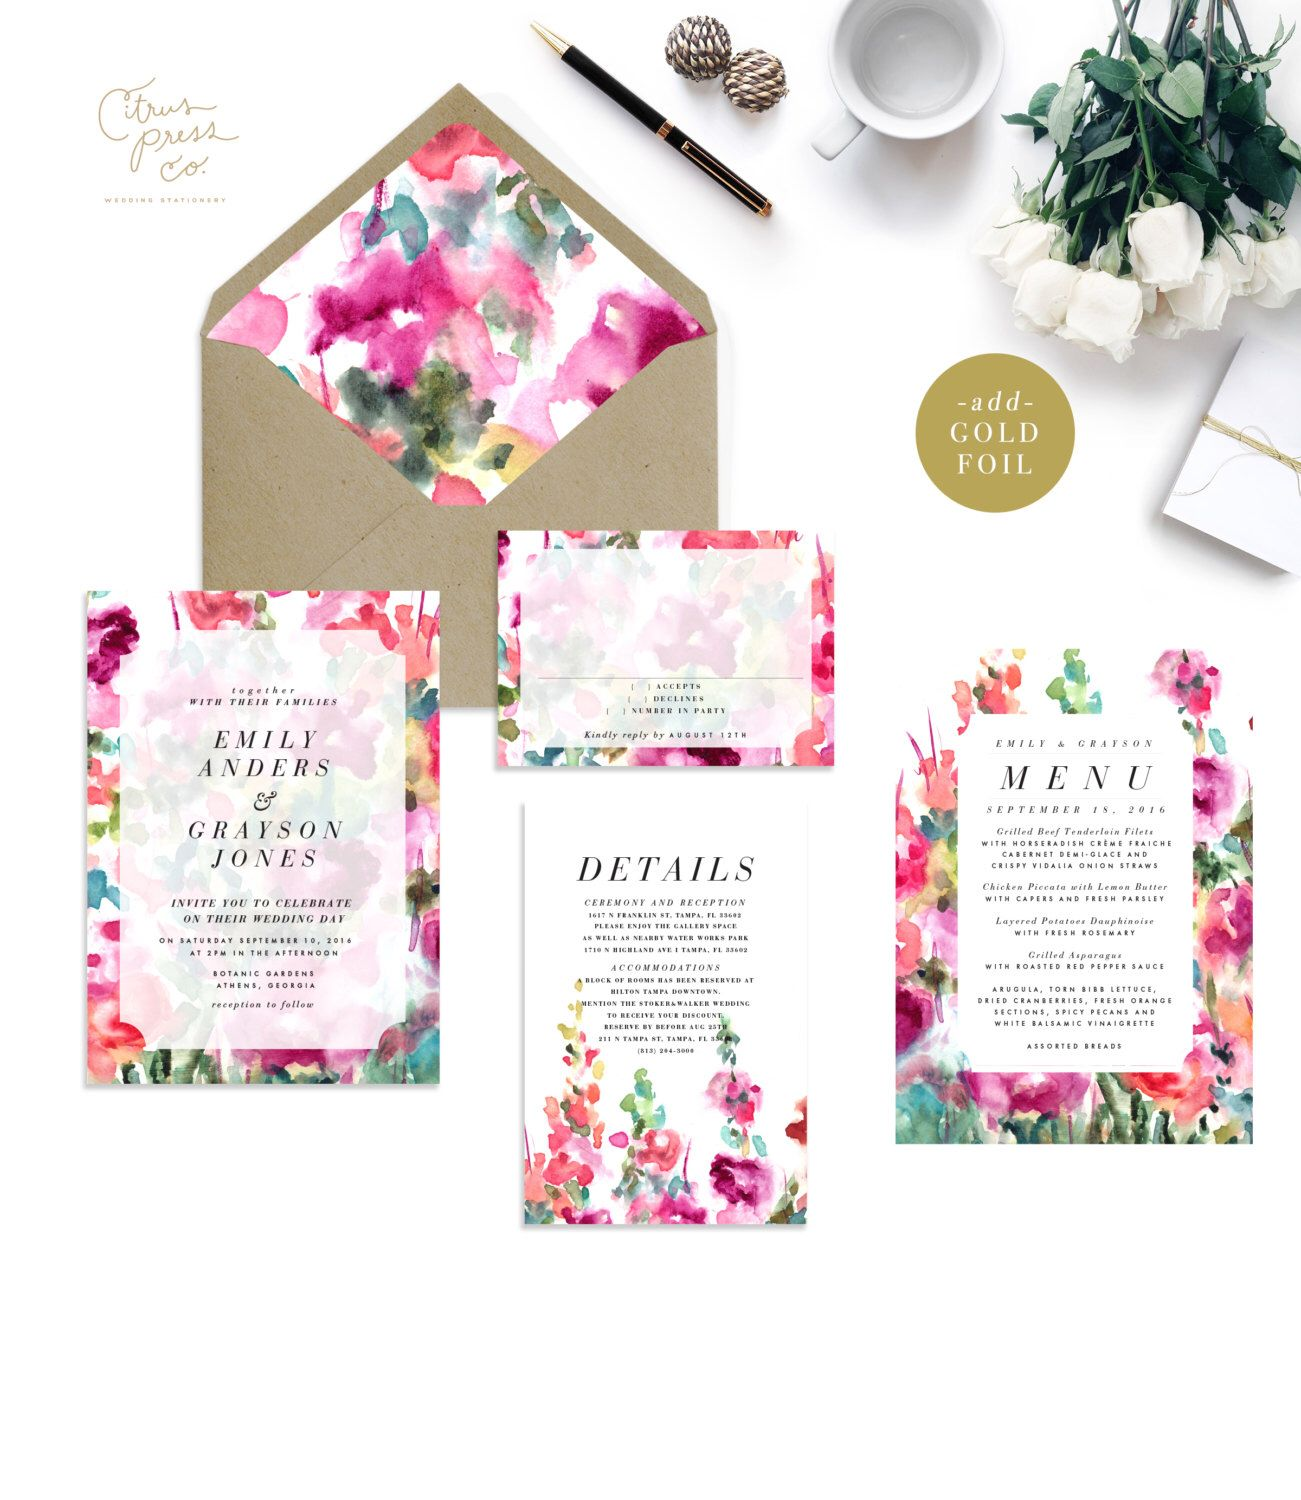 EMILY SUITE Spring Watercolor Wedding Invitation Botanical Colorful Garden Watercolour Outdoor English Pink